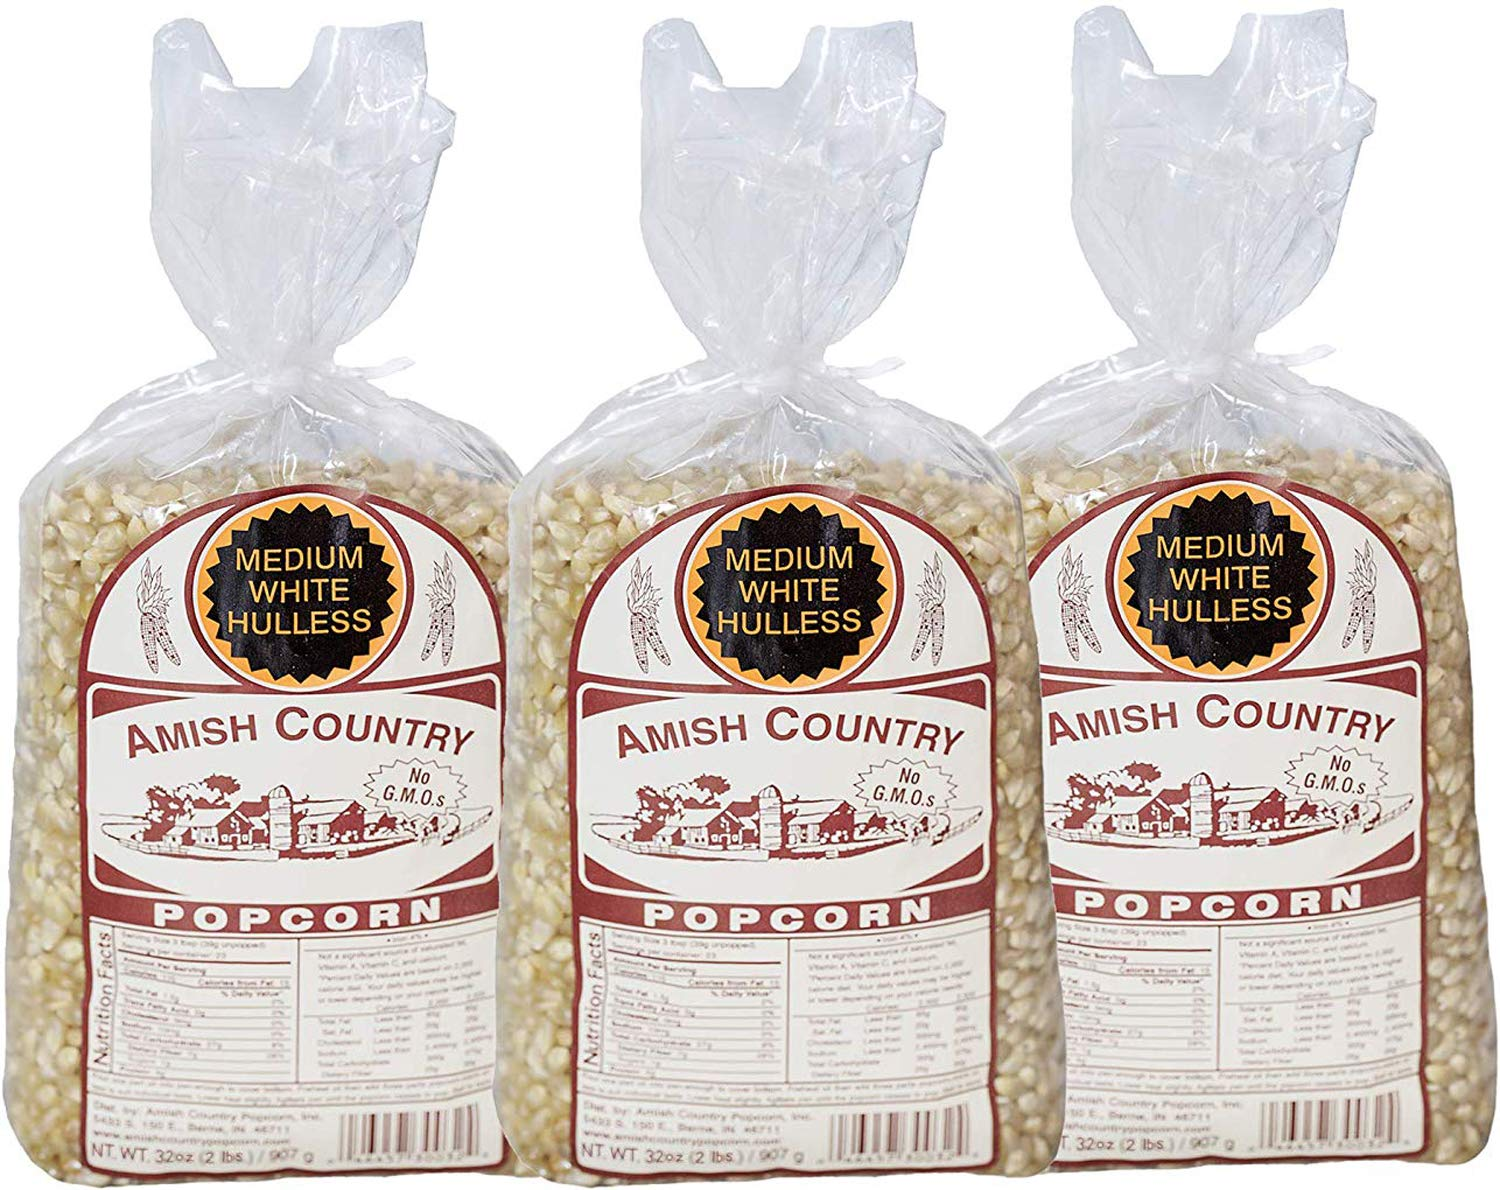 Amish Country Popcorn - 3 (2 Pound Bags) Medium White Popcorn Gift Set Old Fashioned, Non GMO and Gluten Free - With Recipe Guide by Amish Country Popcorn (Image #1)